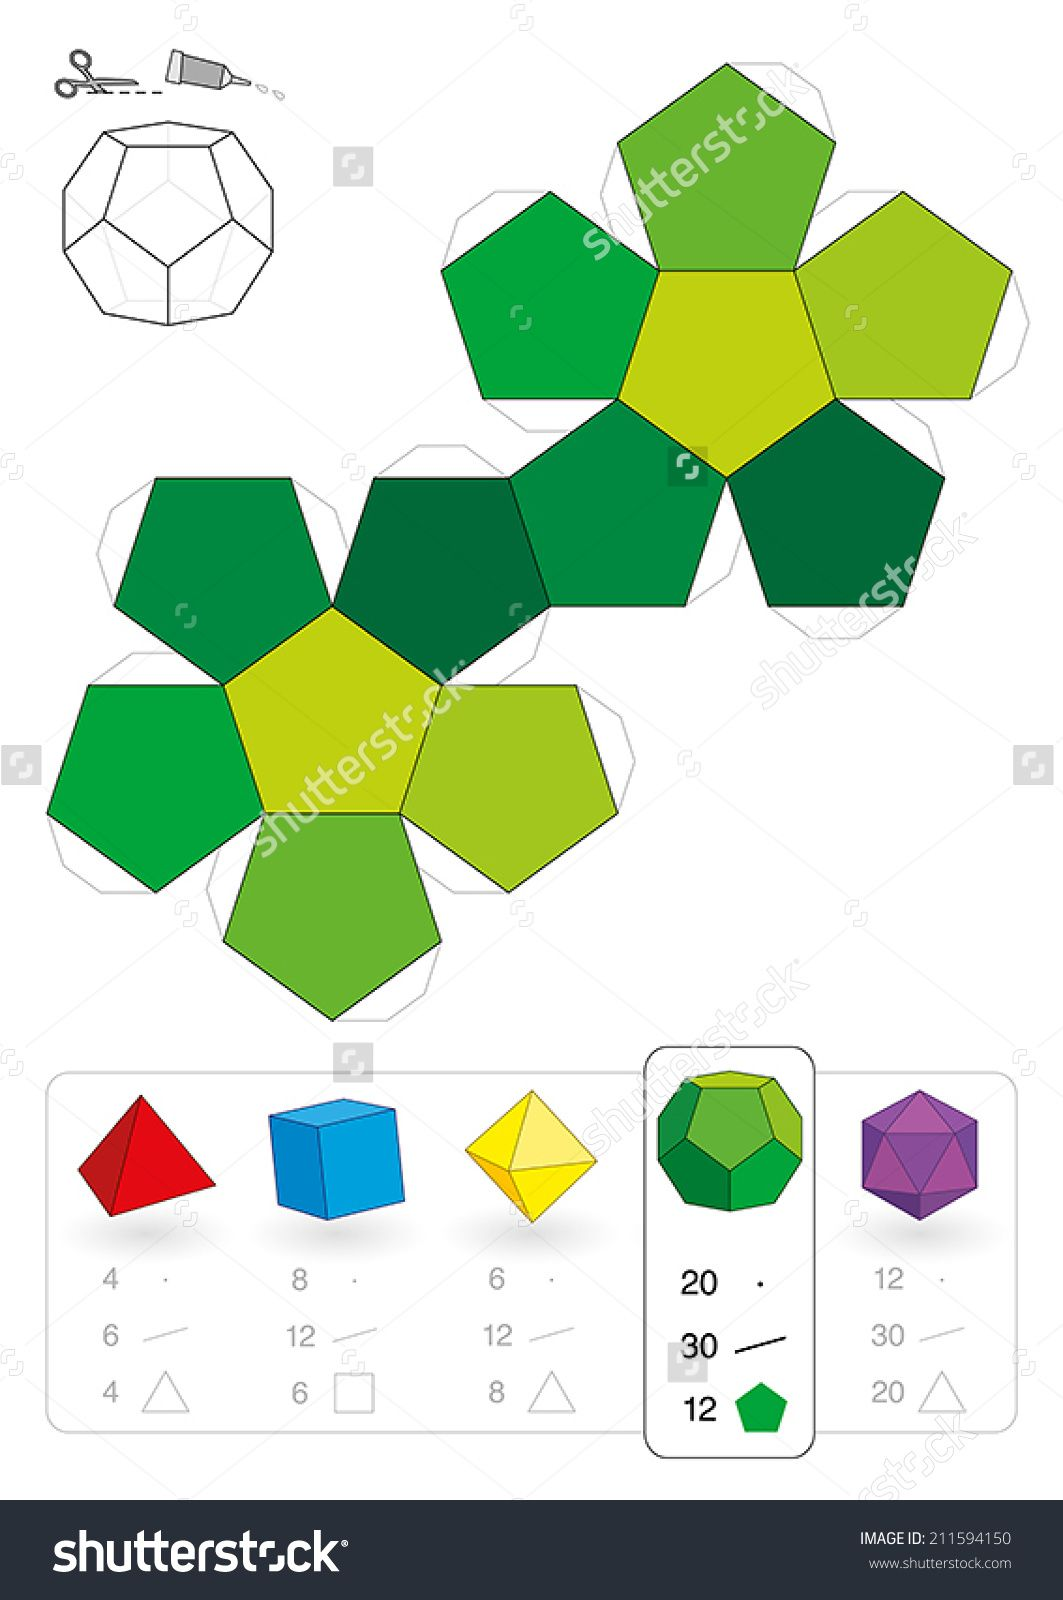 Cardboard Templates For Polyhedrons